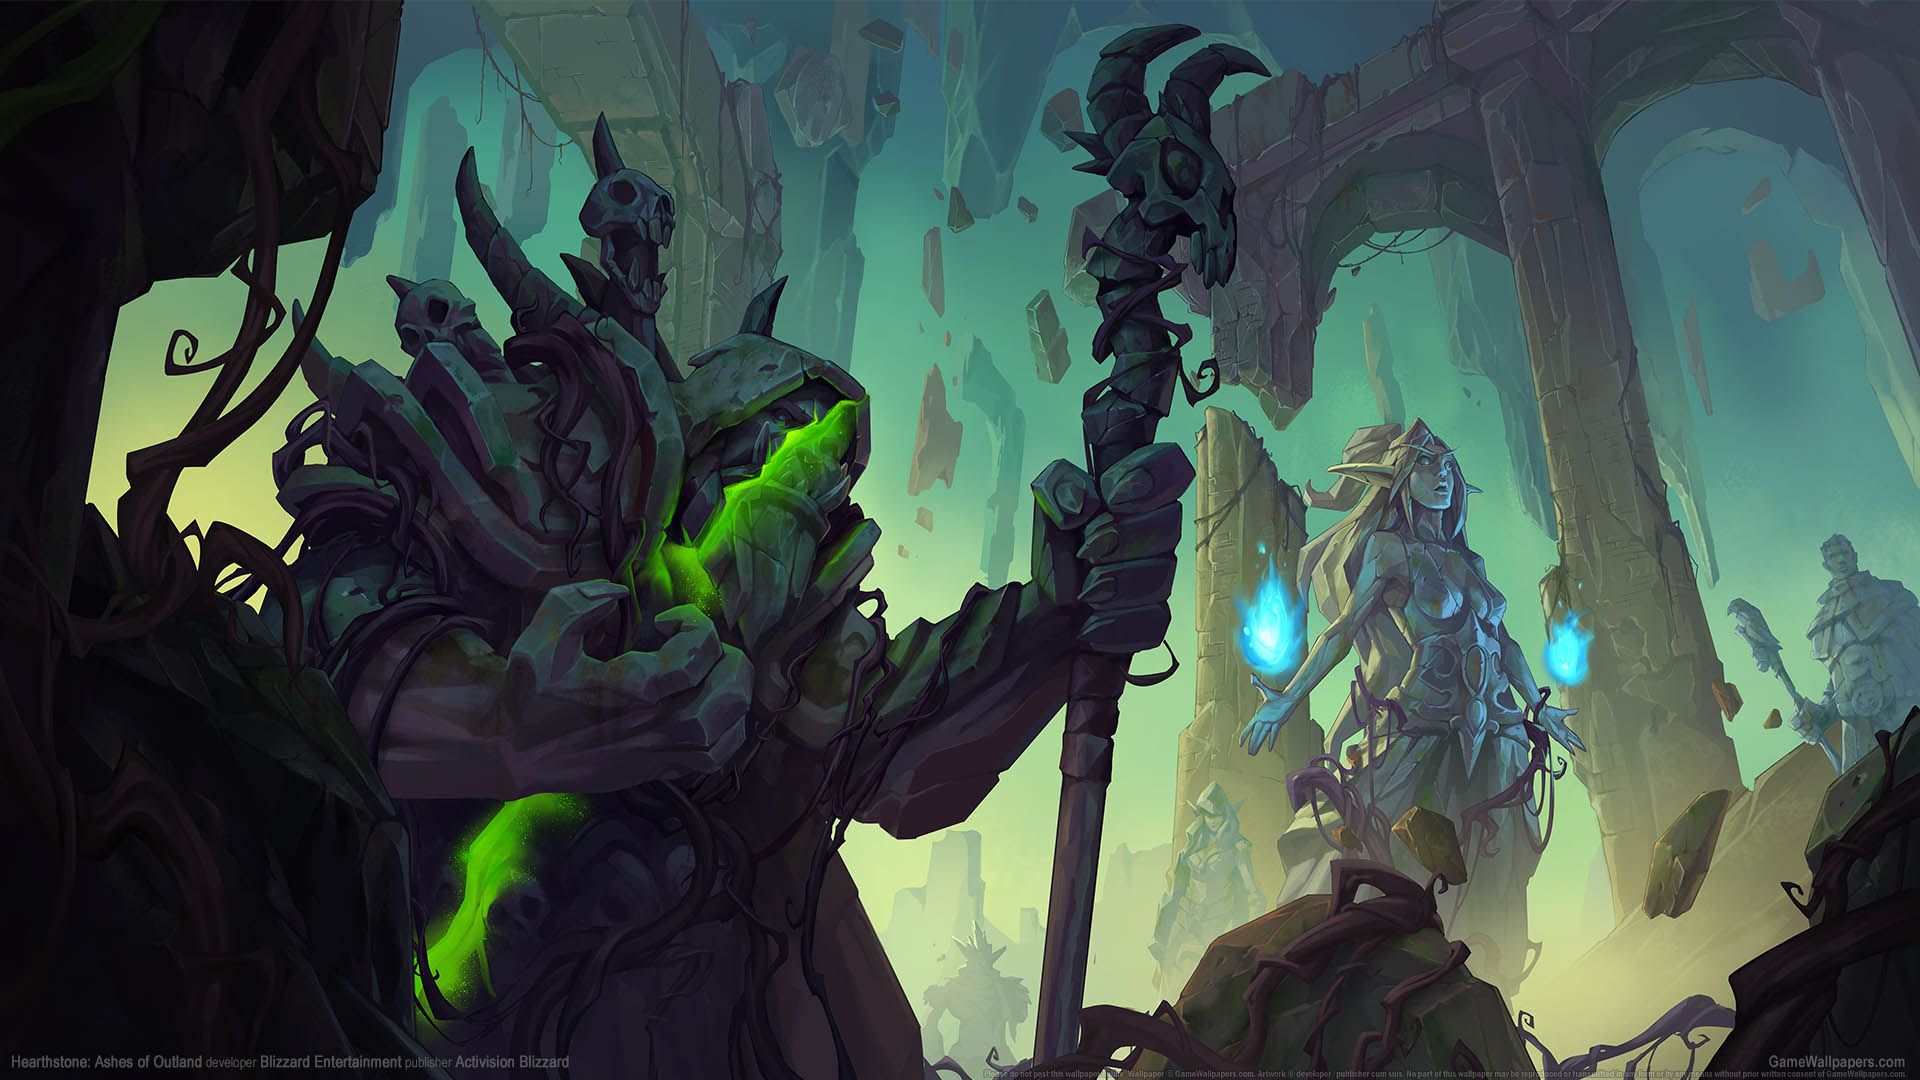 Hearthstone: Ashes of Outland fond d'écran 01 1920x1080